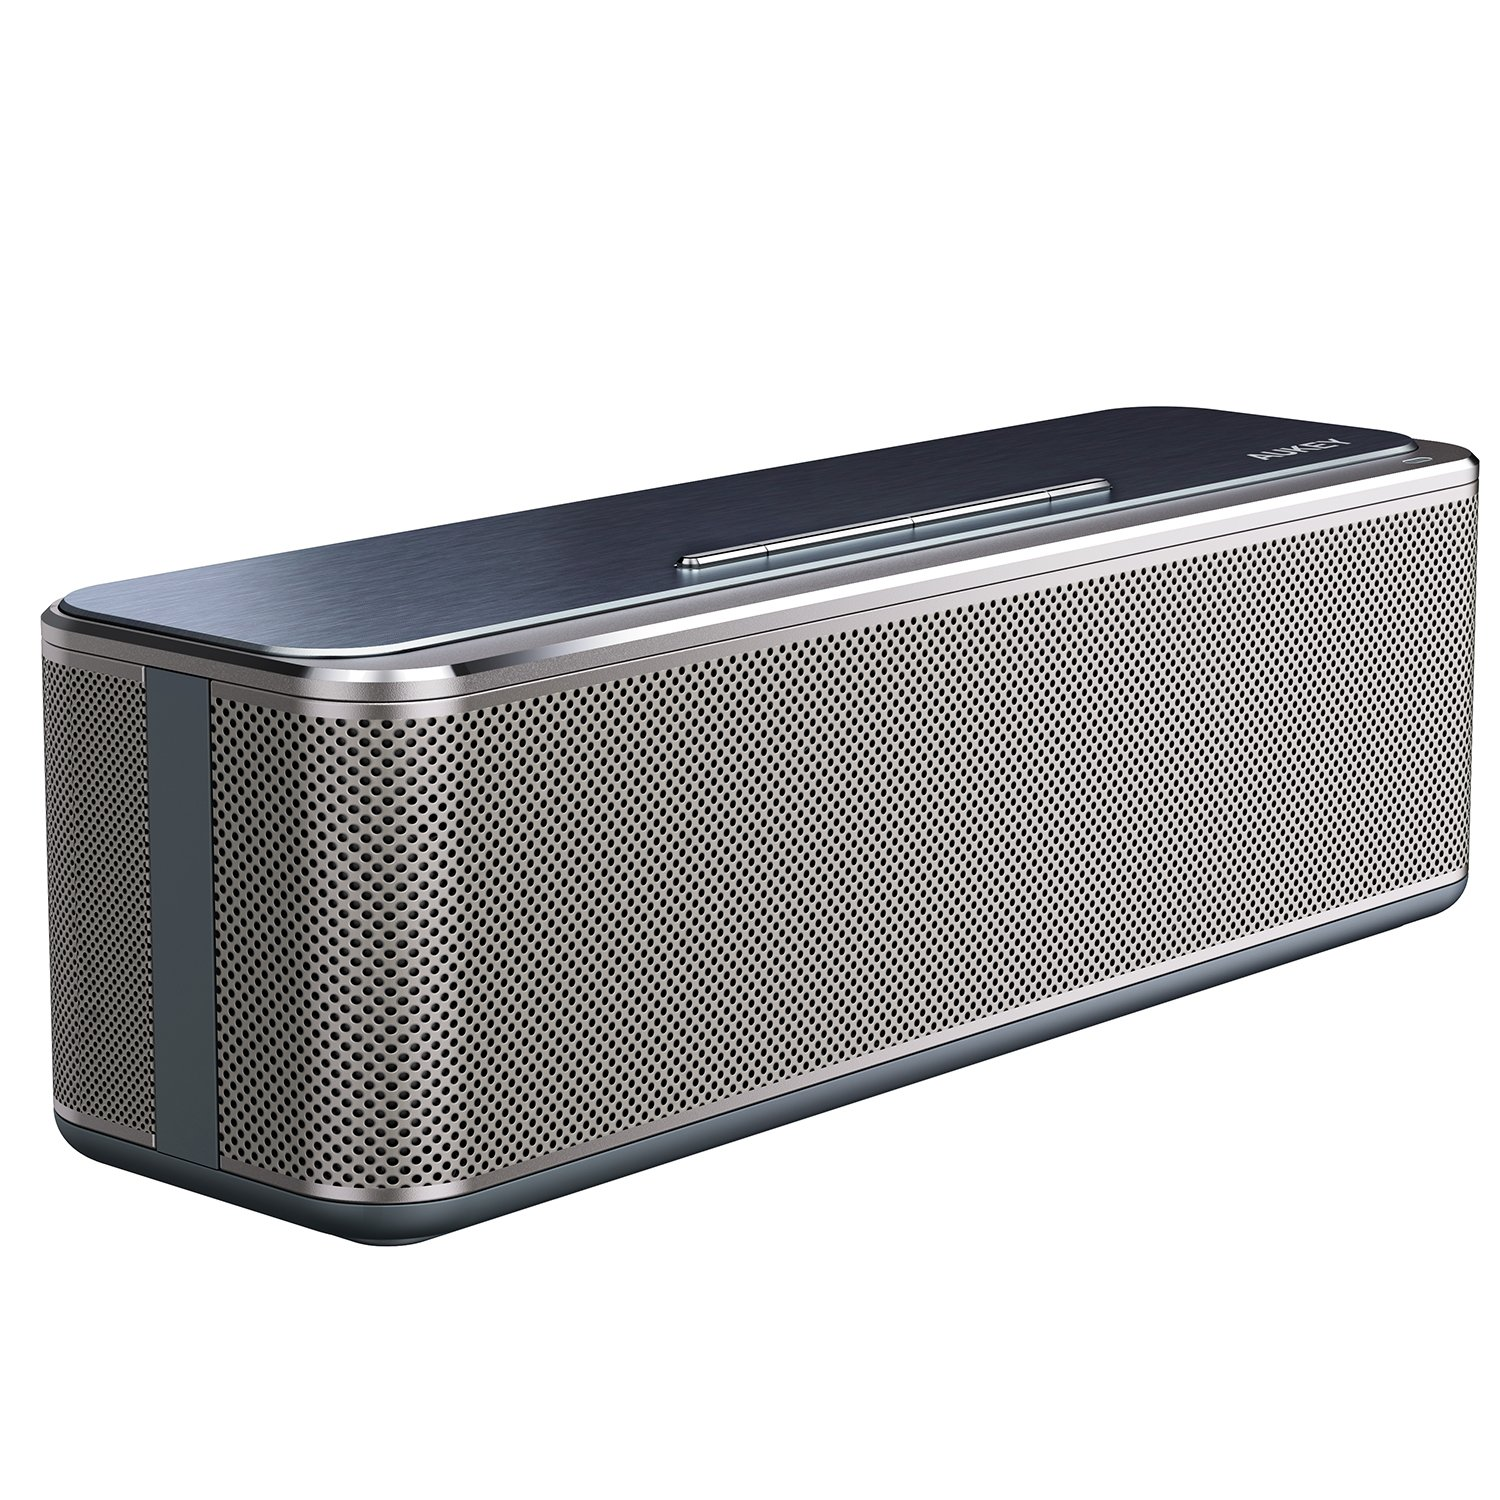 Aukey Bluetooth Stereo Speaker 16w, Metal Wireless Speaker.